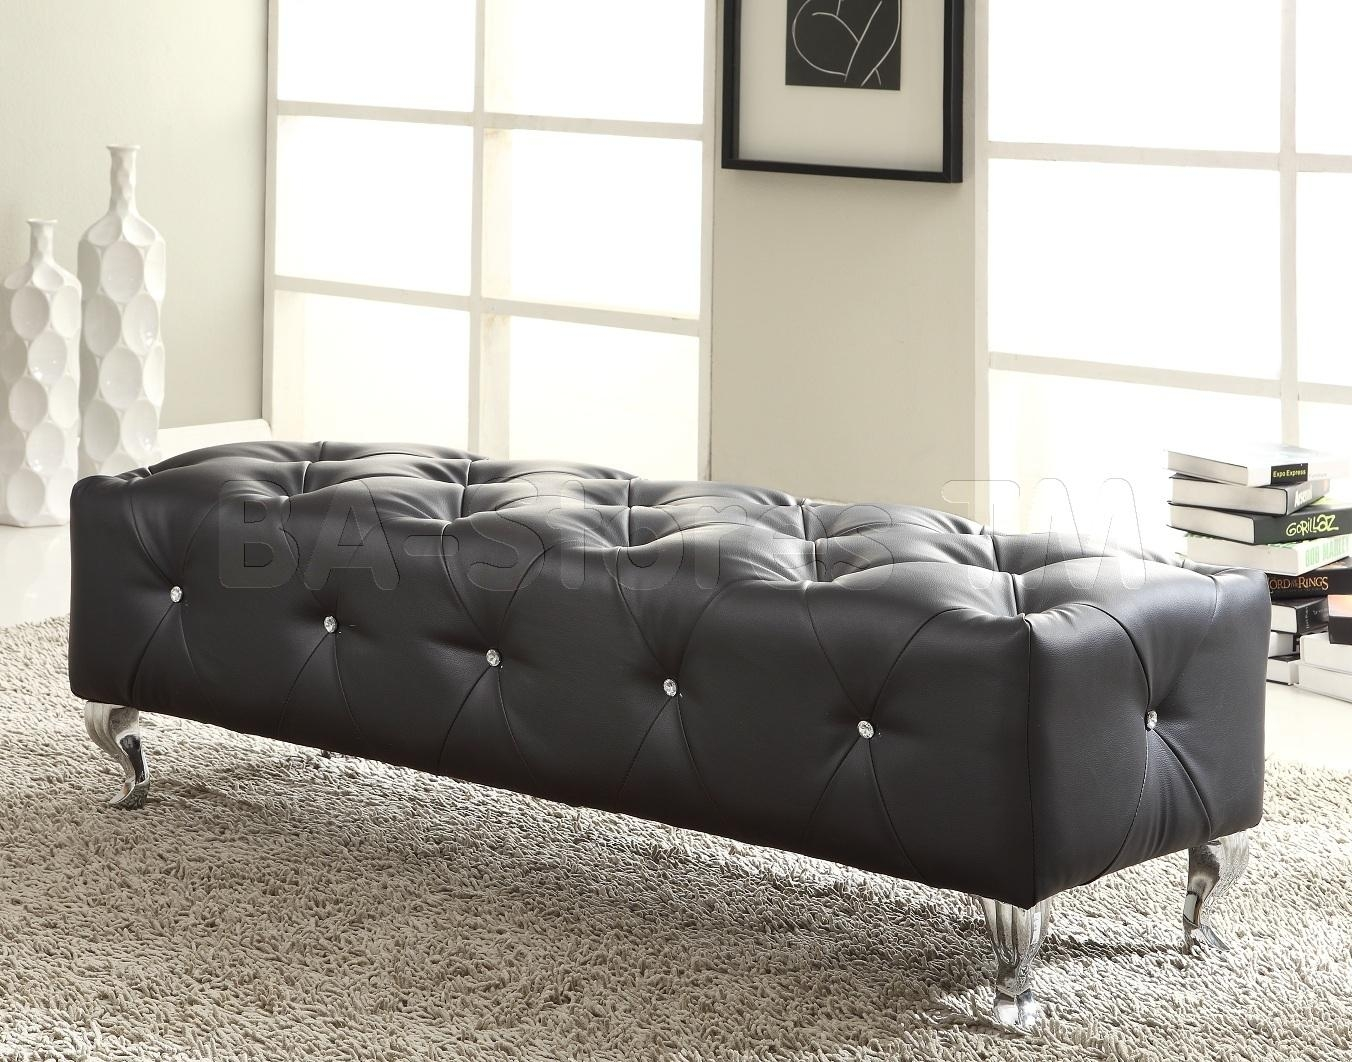 Modern Chairs, Armchairs, Chairs With Ottomans, Swivel Chairs For In Leather Bench Sofas (View 16 of 22)